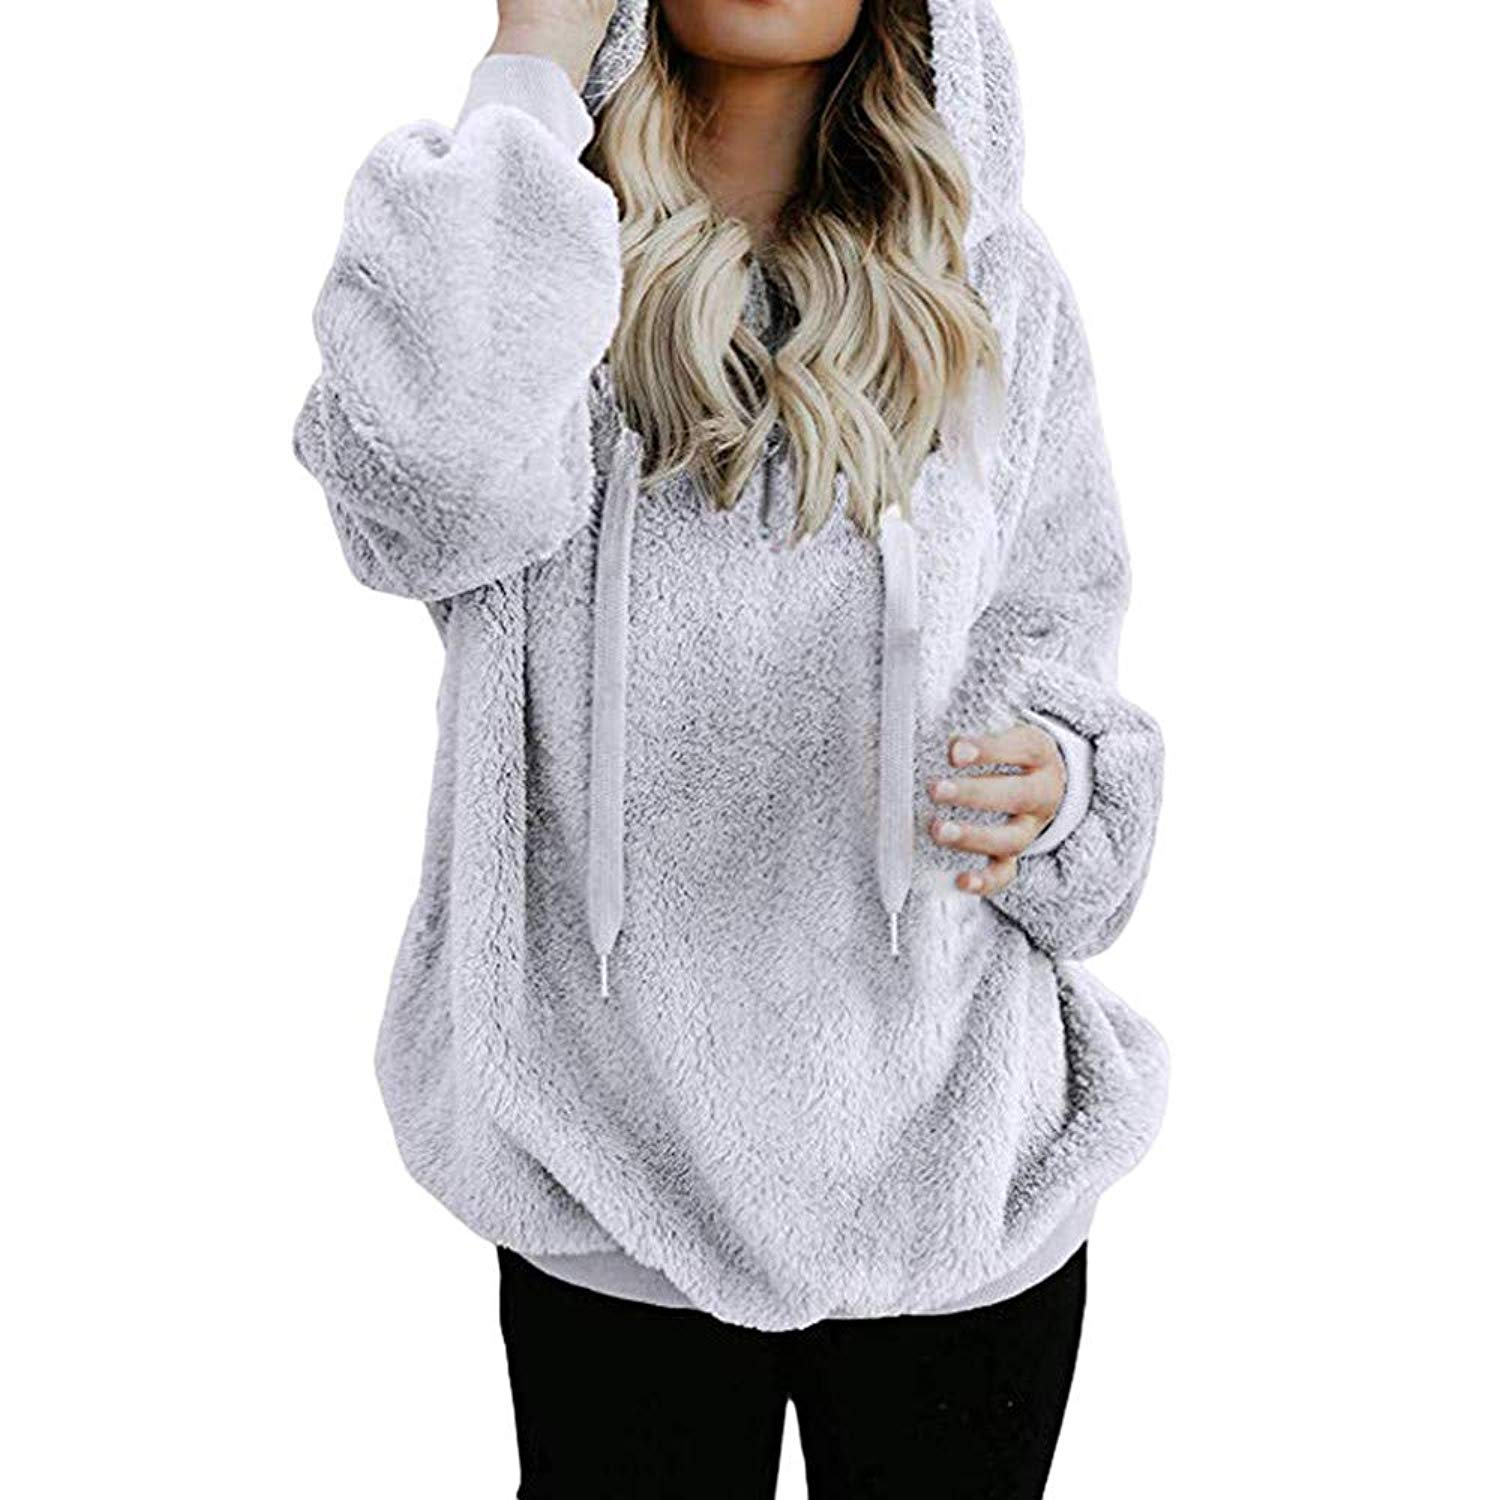 Get Quotations · Handyulong Womens Hoodies Teen Girls Casual Winter Warm  Fleece Tunic Hooded Sweatshirts Pullover Blouse Tops Shirts 2e08f97a5d